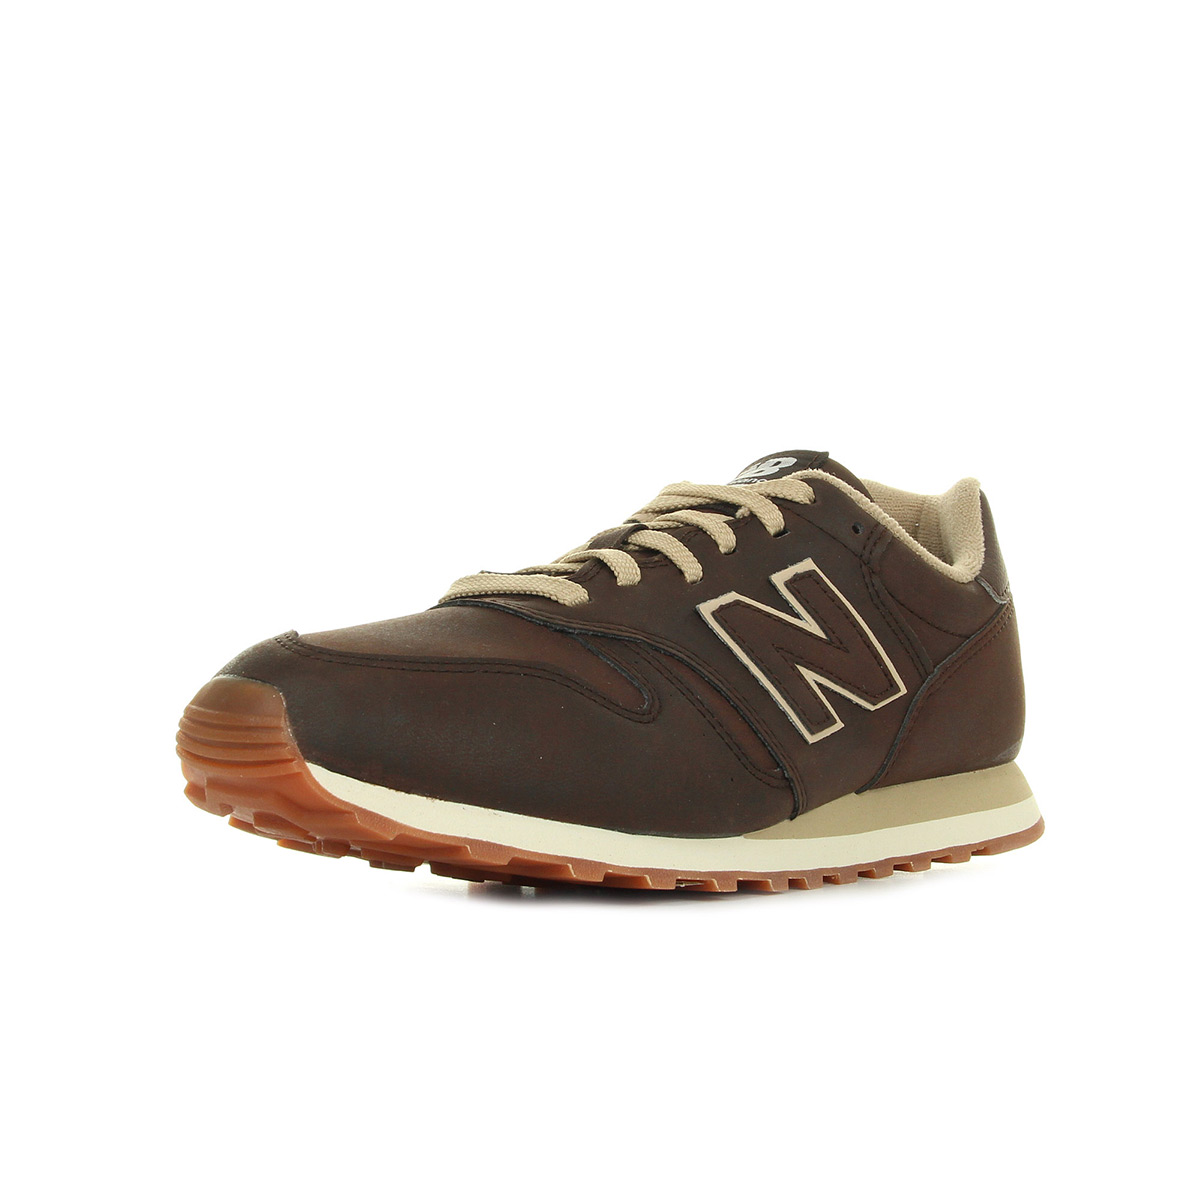 Chaussures Baskets New Balance homme ML373 OTO taille Camel Cuir Lacets